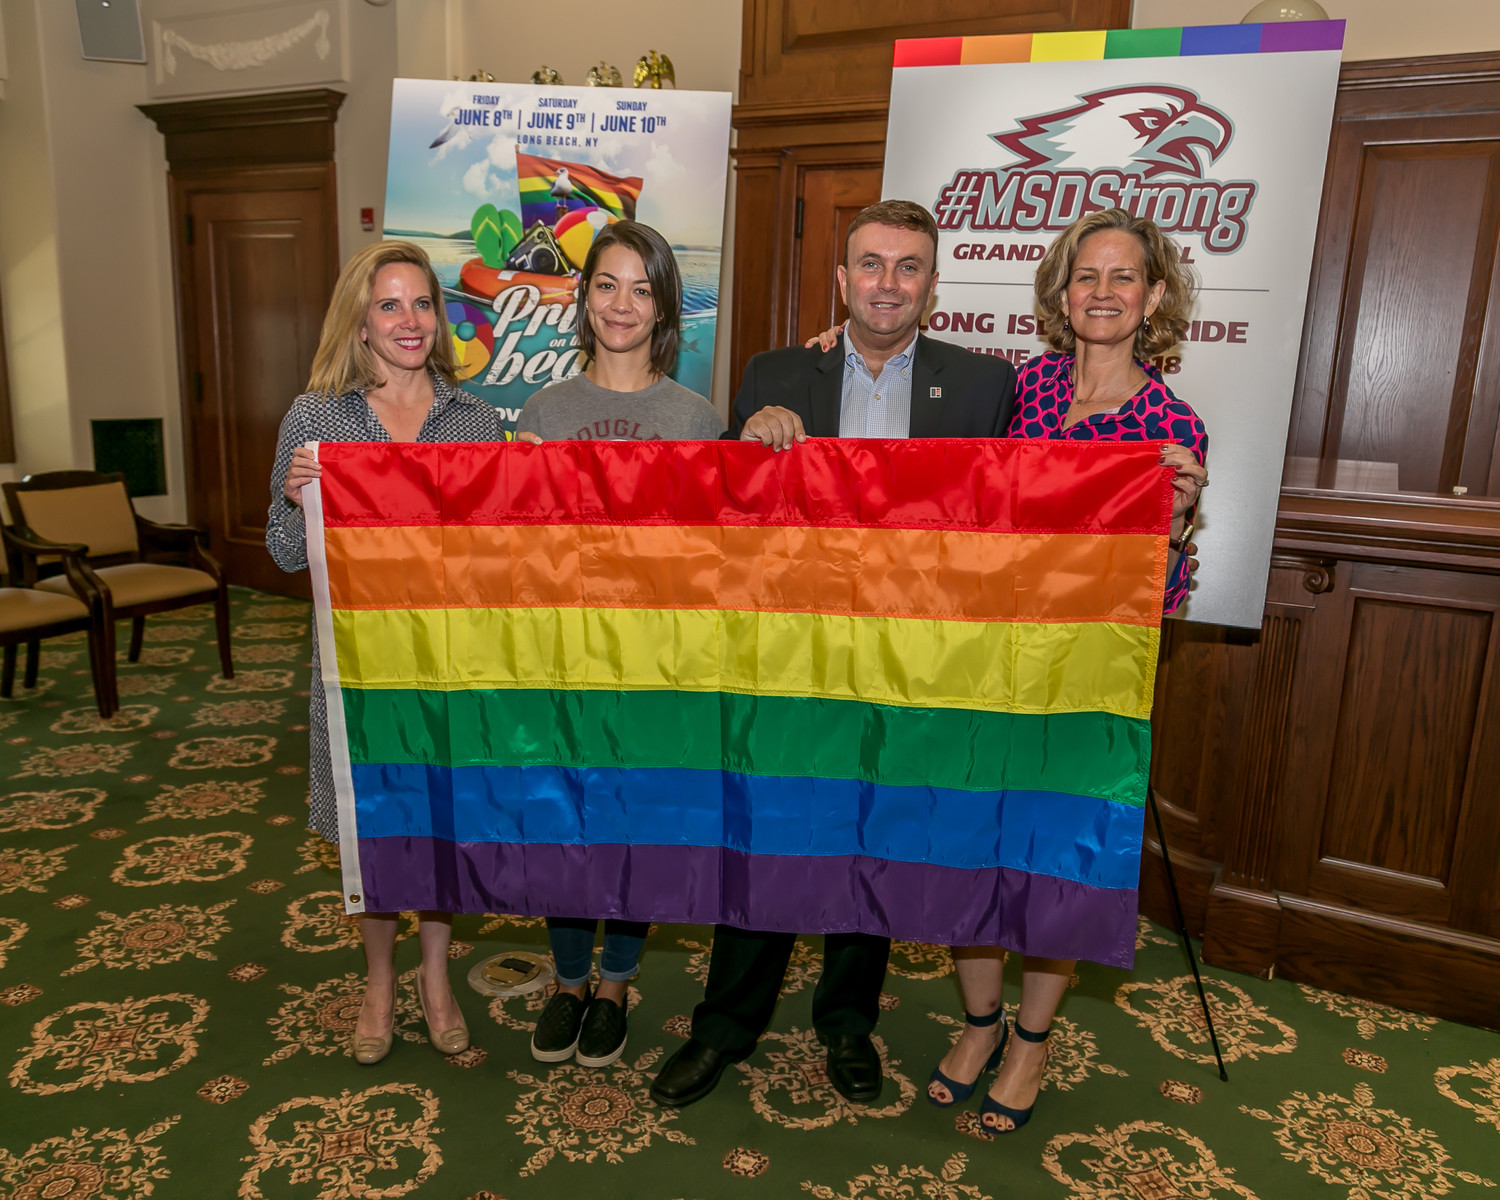 Hempstead Town Supervisor Laura Gillen, left, was joined by Gwen Gossler — the late Scott Beigel's fiancée — Chief Executive Officer of the LGBT Network David Kilmnick and County Executive Laura Curran at Monday's press conference.